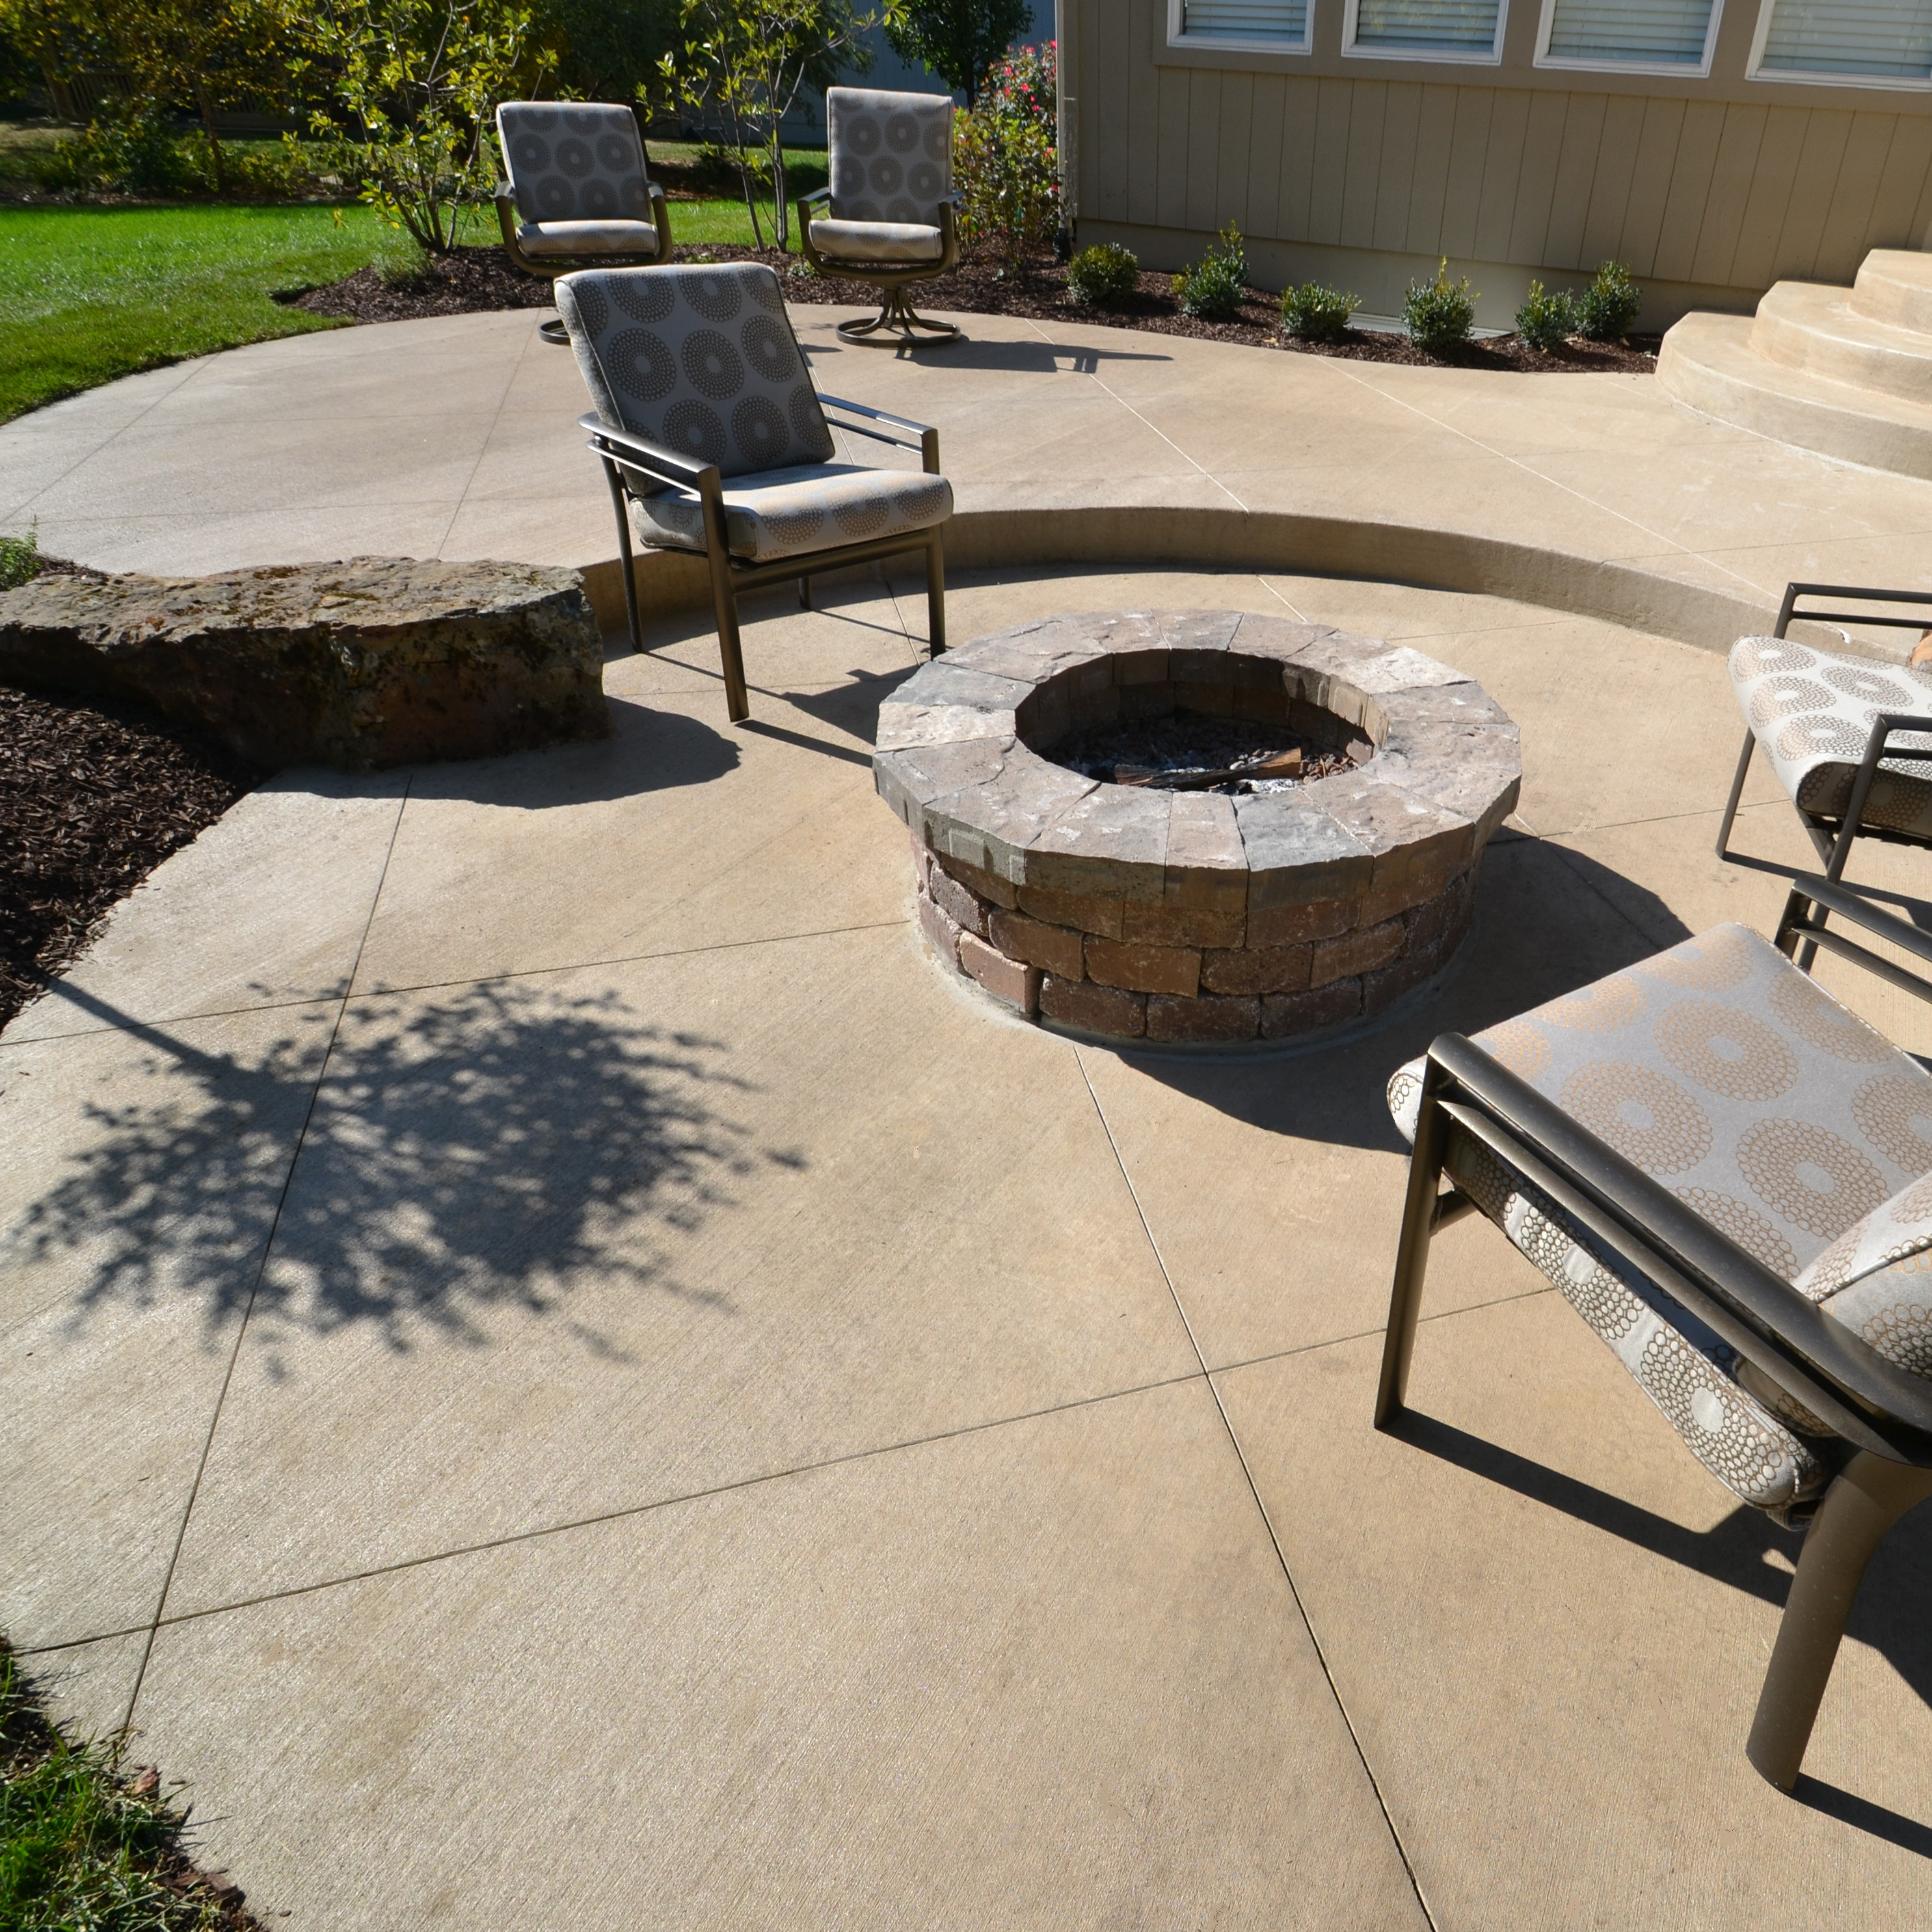 A custom concrete patio and fire pit by Aesthetic Concrete Designs that you can have in your backyard.